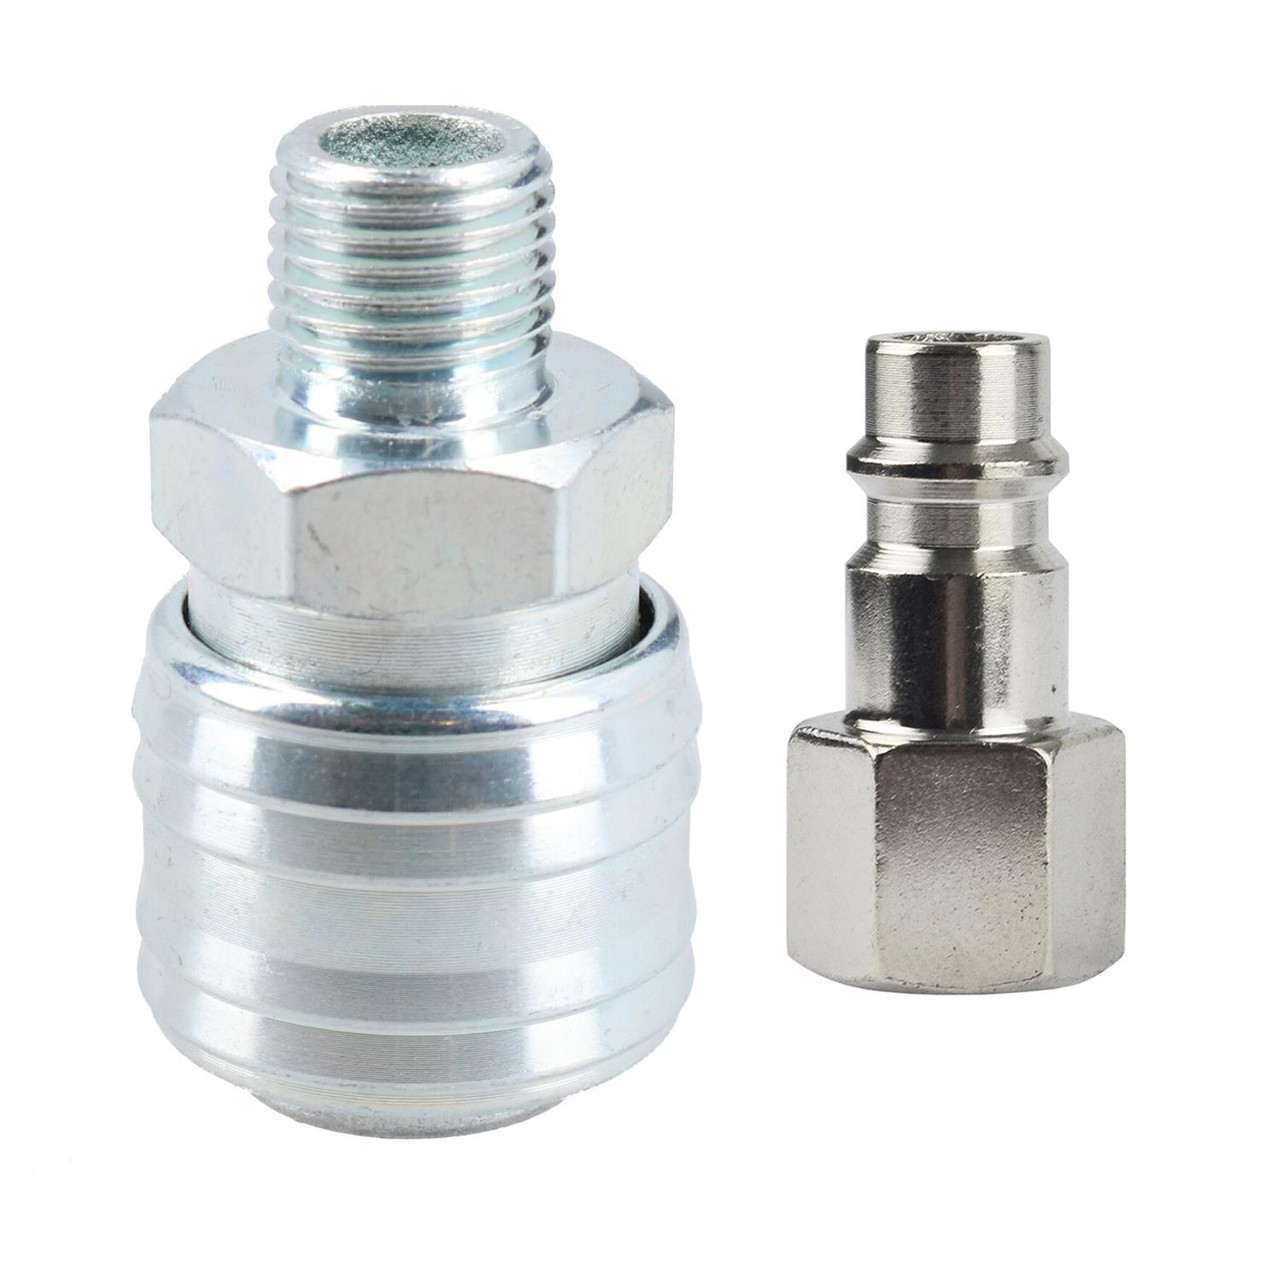 1//4 BSP Euro Air Line Hose Fitting Female Coupler /& Male Fitting Quick-Release